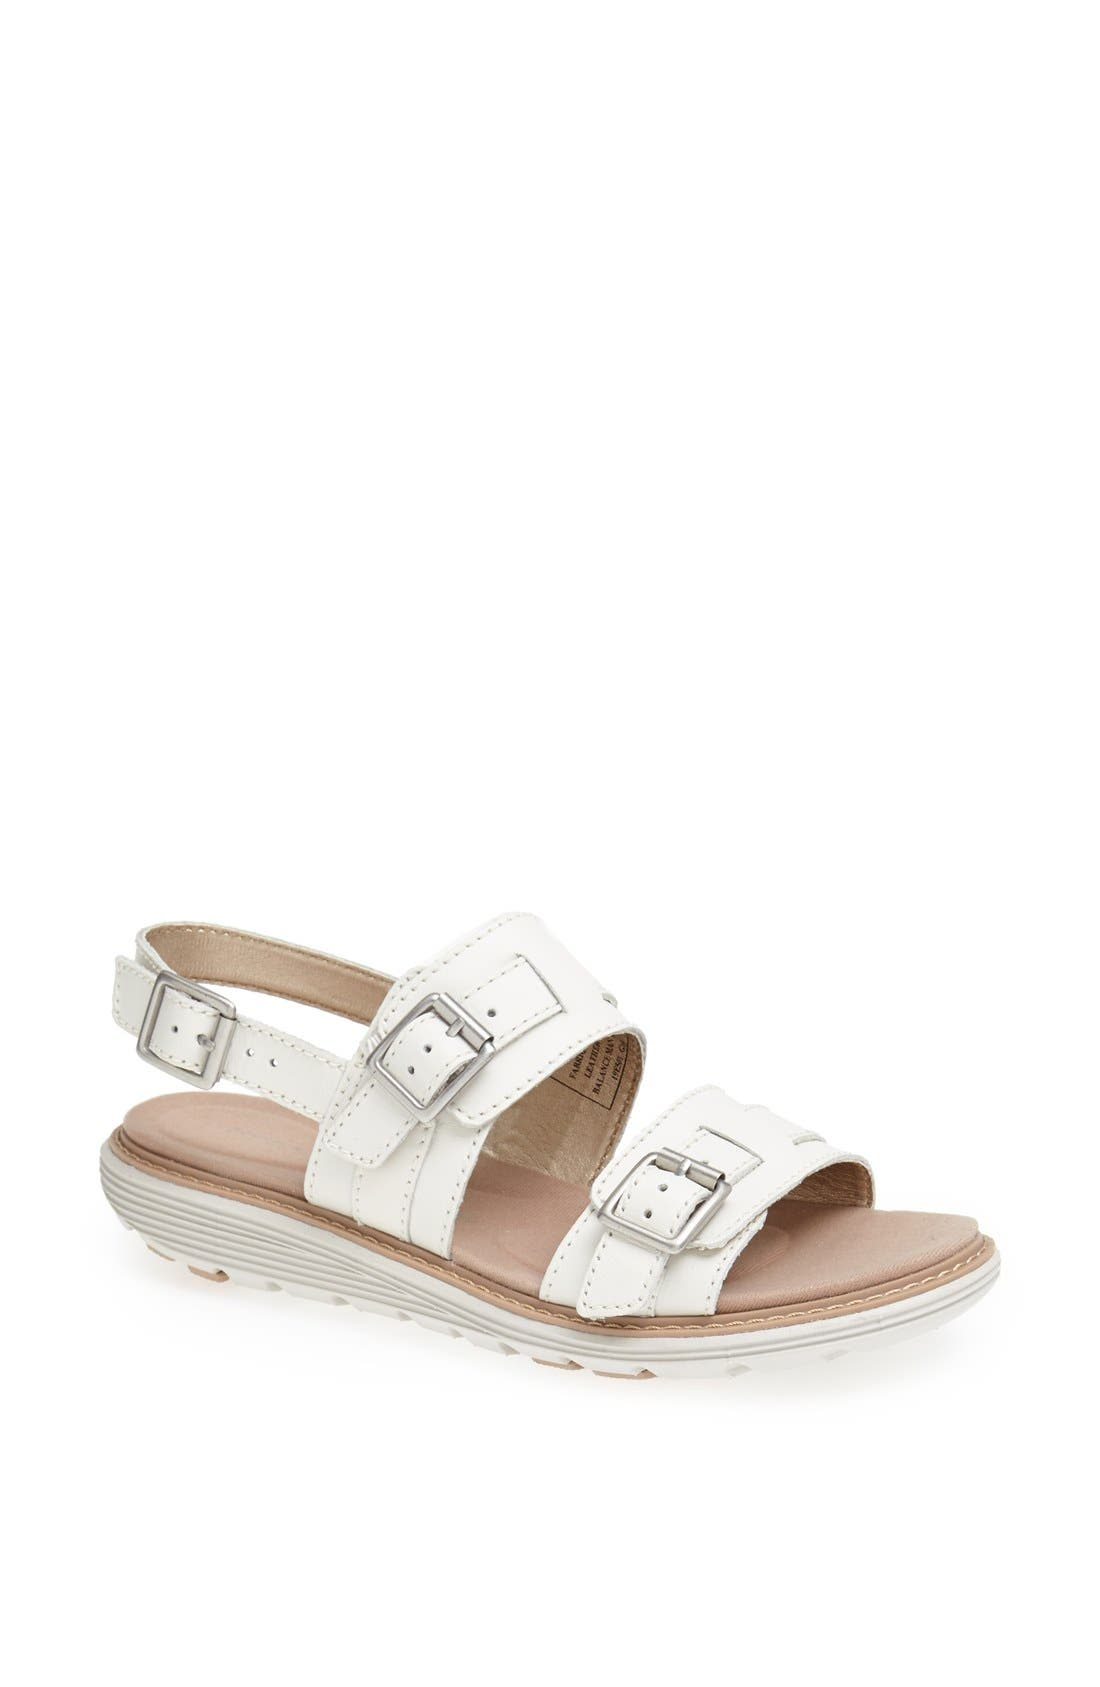 Alternate Image 1 Selected - Rockport 'TruWalk - Zero' Sandal